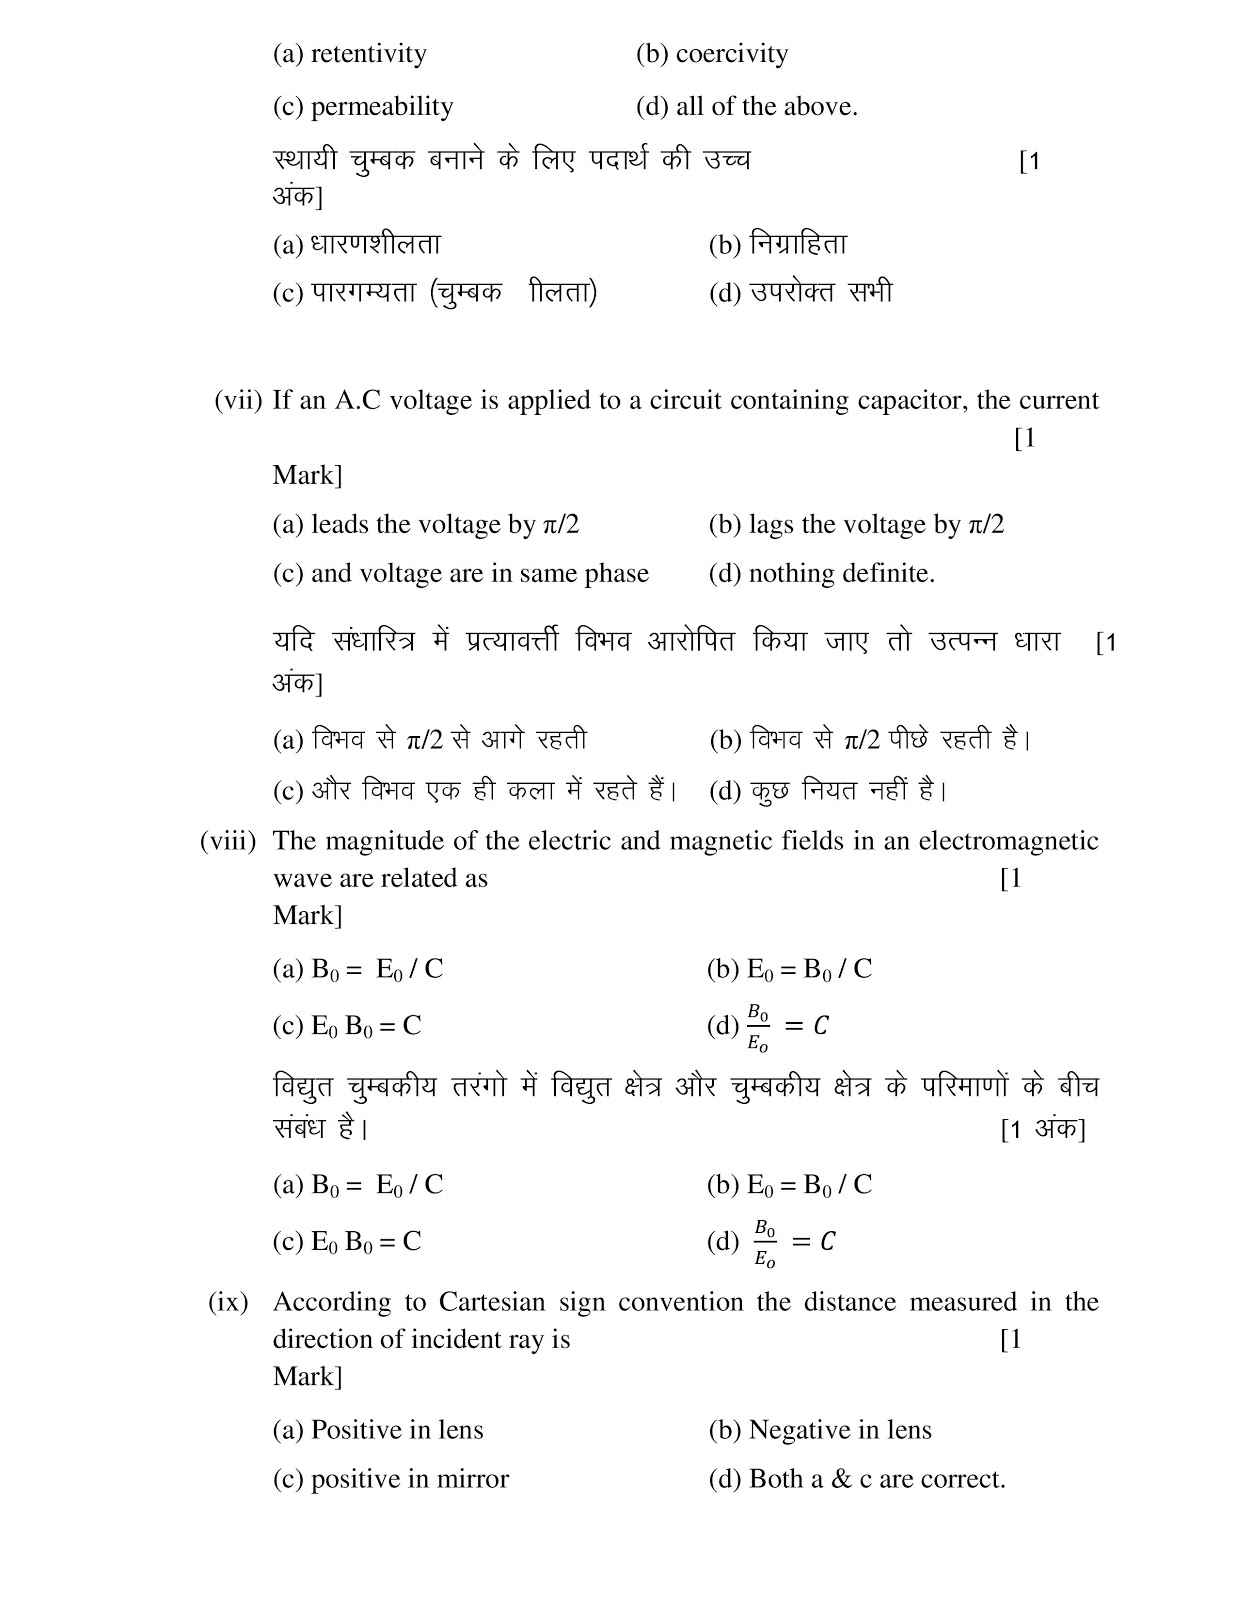 JAC board class 12th 2018 Physics sample paper